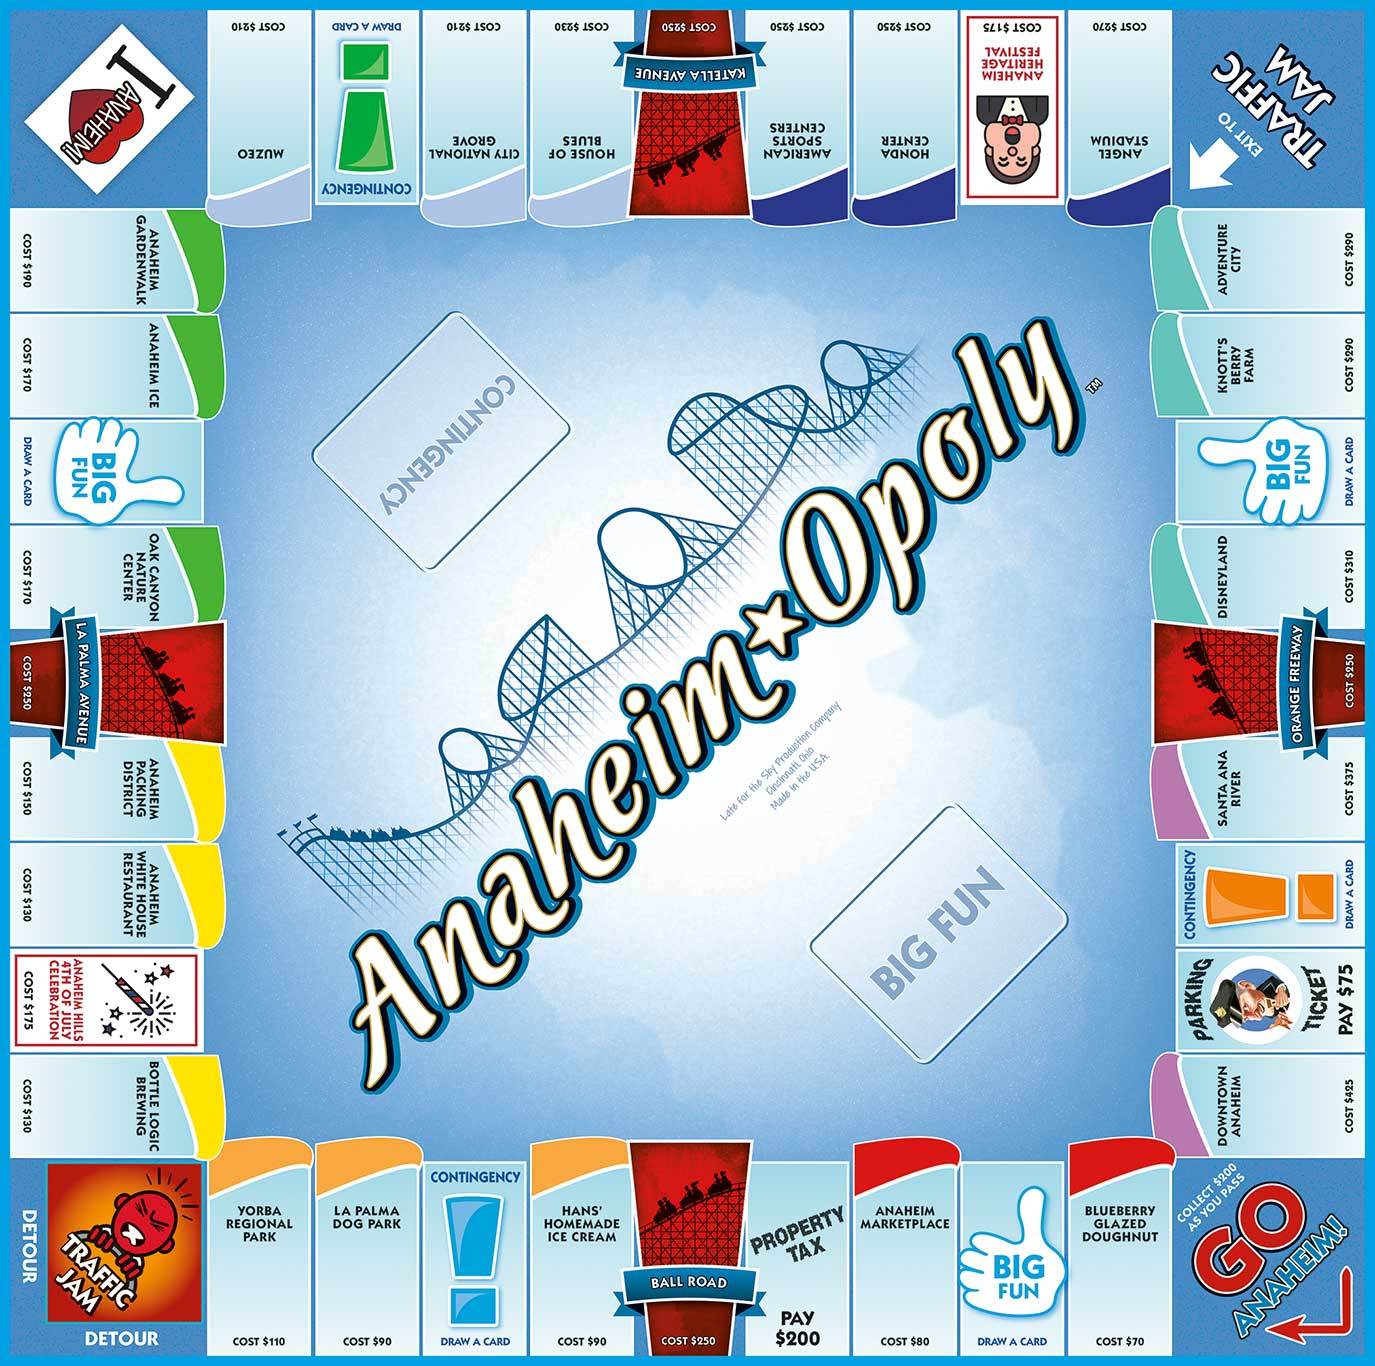 ANAHEIM-OPOLY Board Game